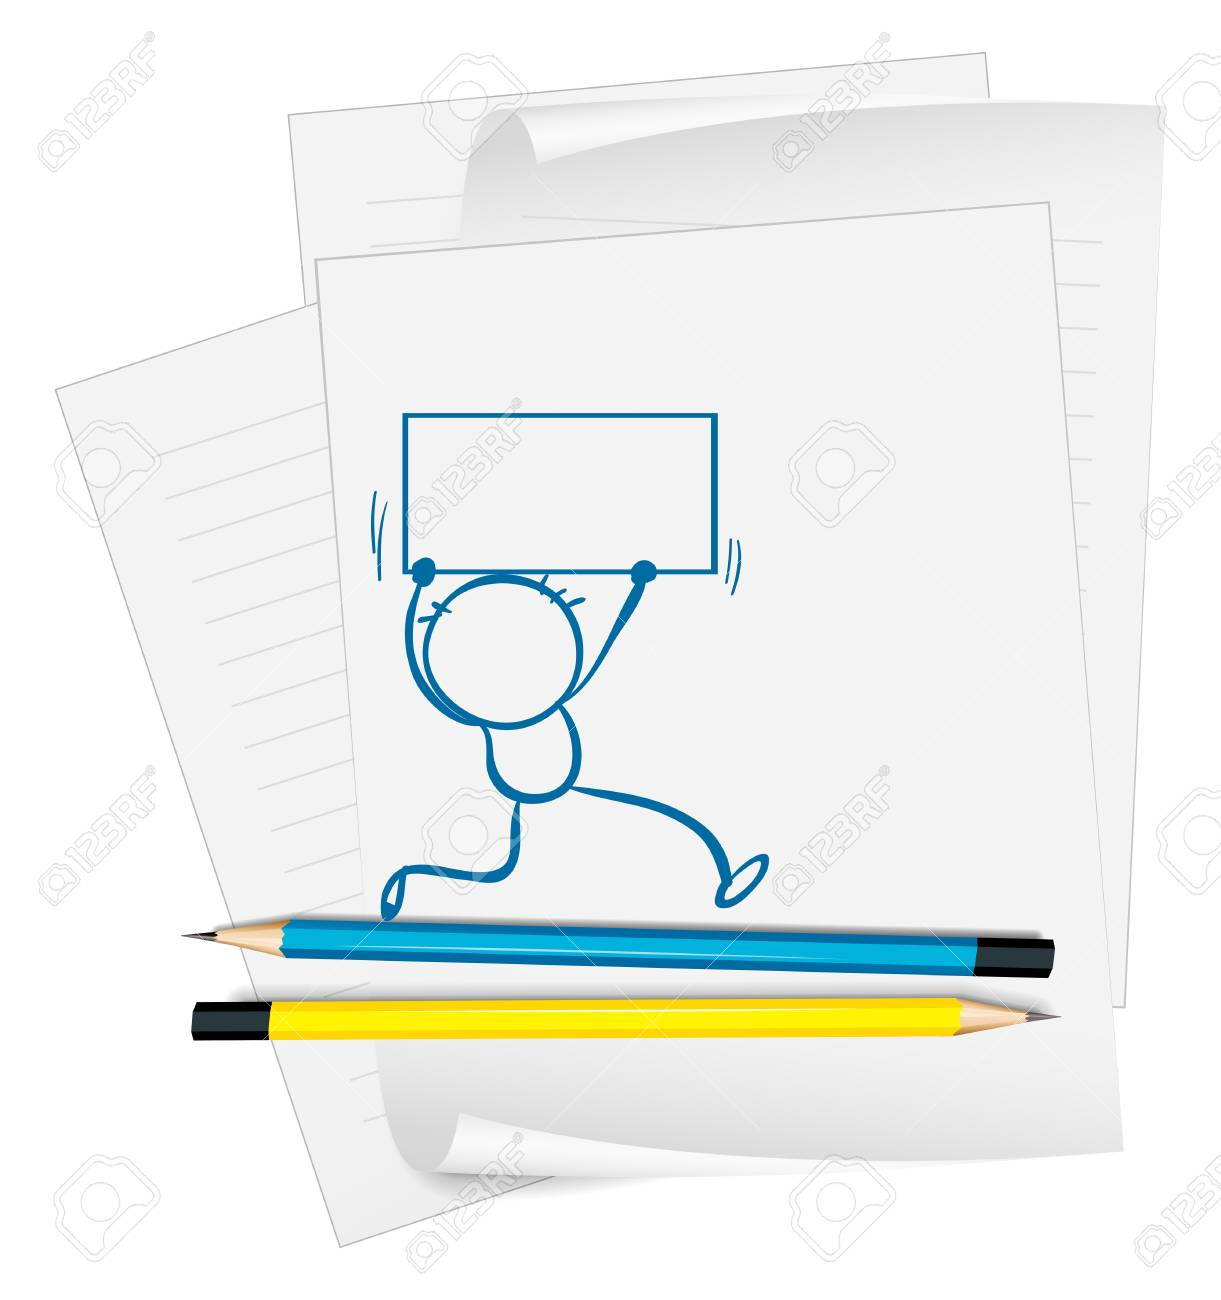 Illustration of a paper with a drawing of a boy holding a signage on a white background Stock Vector - 19301265